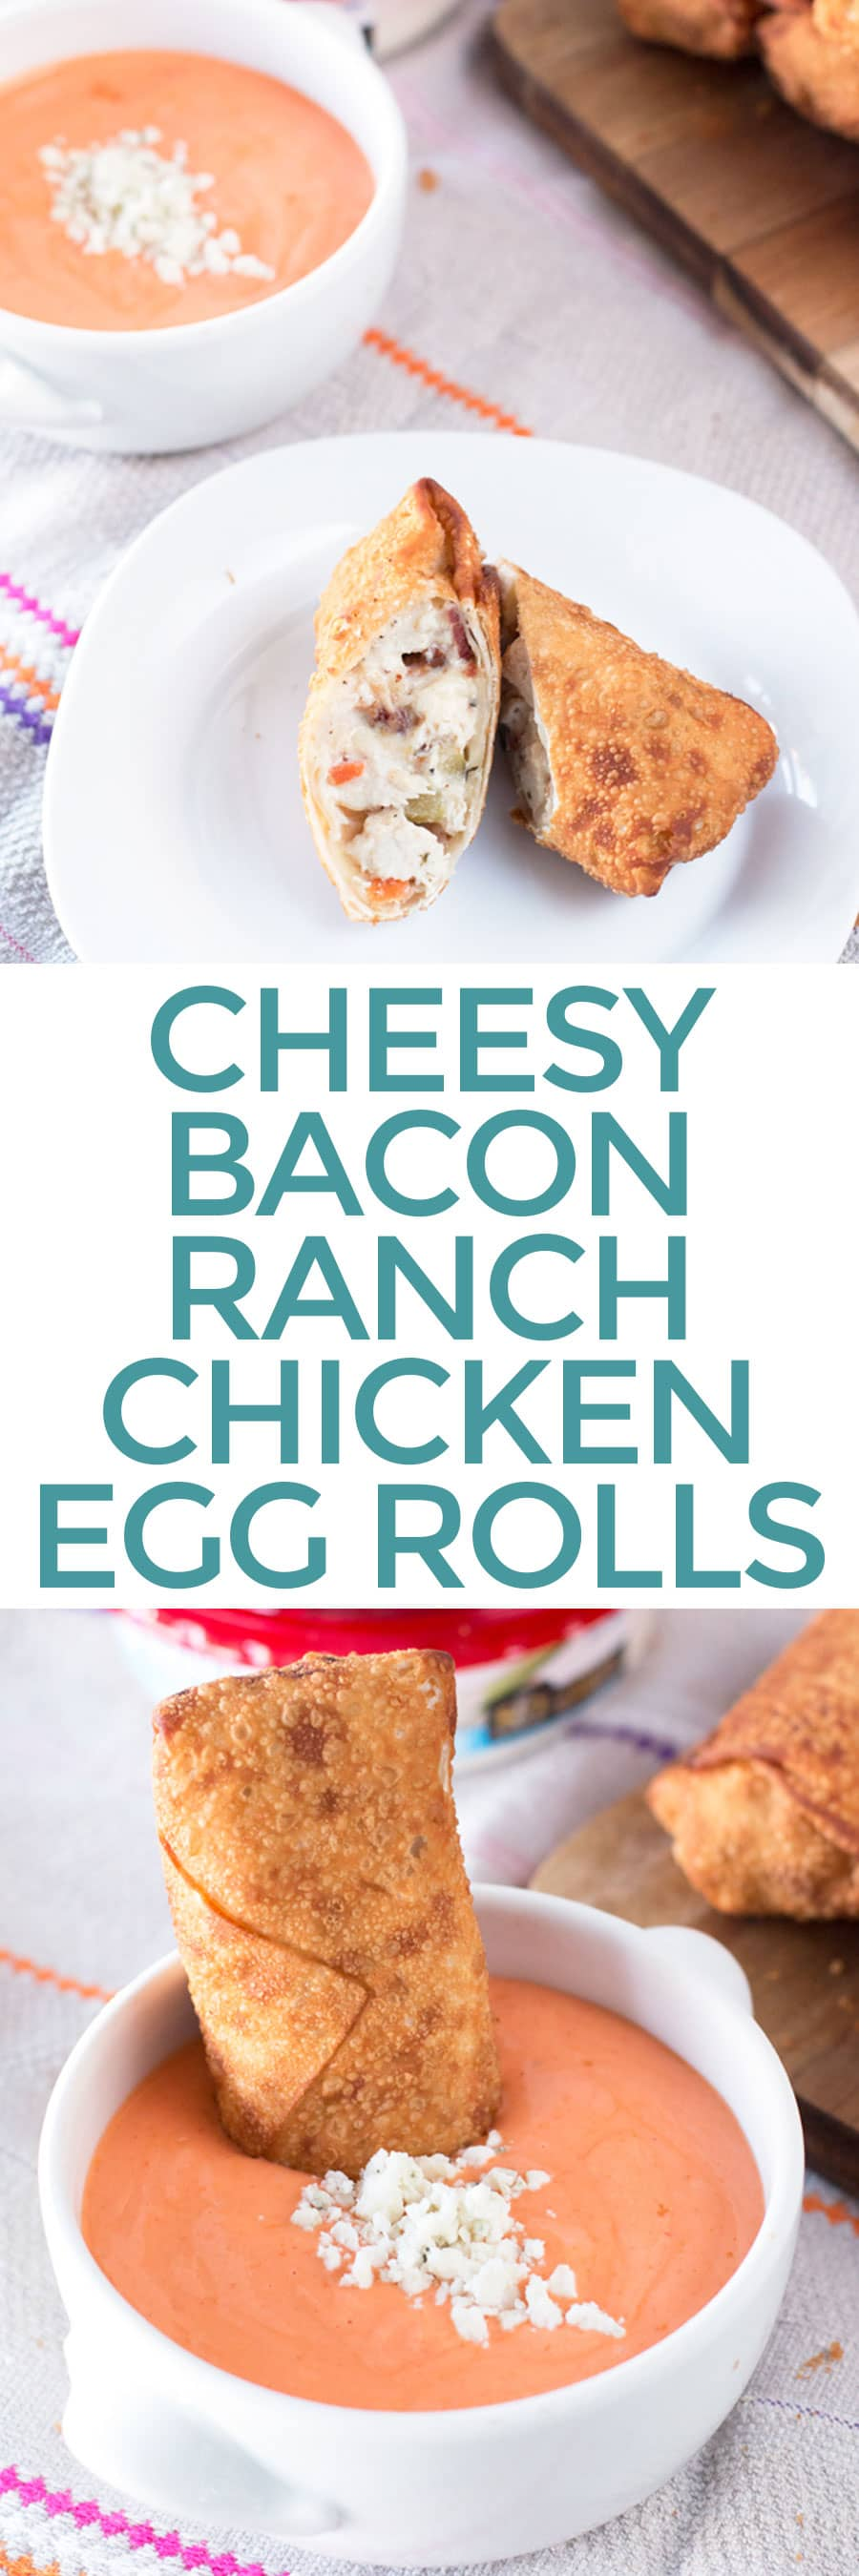 Cheesy Bacon Ranch Chicken Egg Rolls  | cakenknife.com